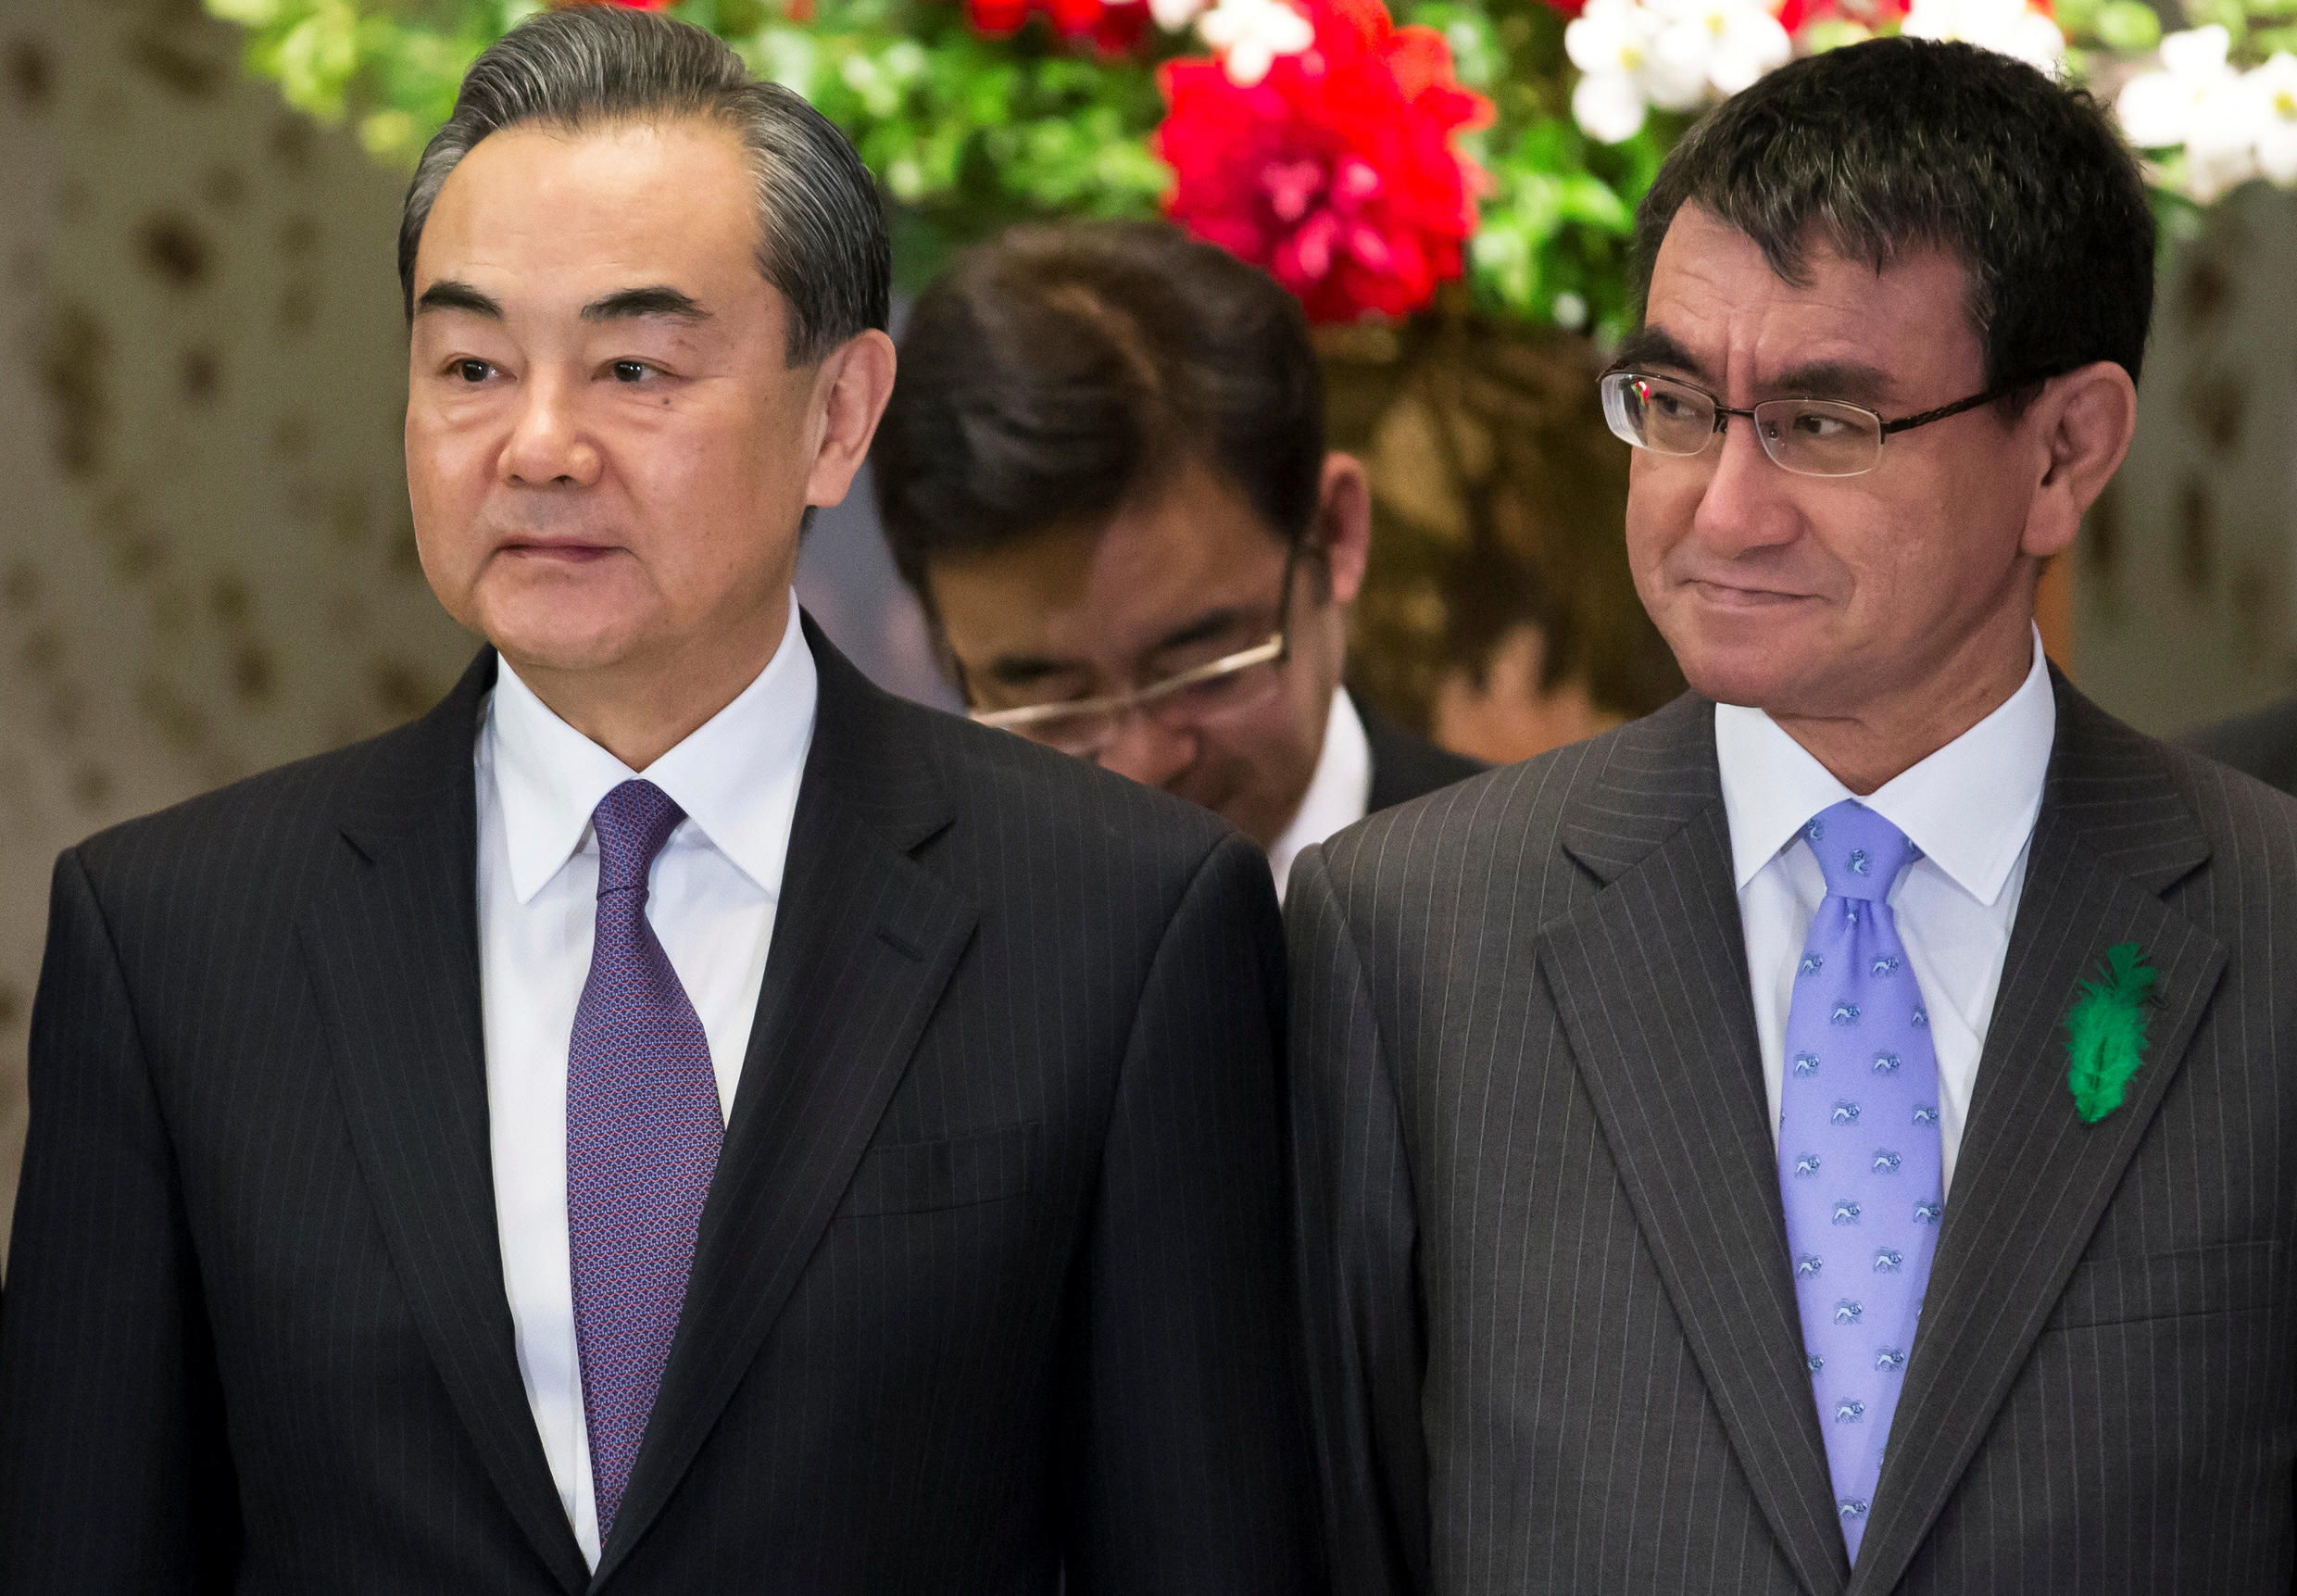 Wang Yi, China's foreign minister, and Taro Kono, Japan's foreign minister, pose during a photo session ahead of a high-level Japan-China economic dialogue in Tokyo, Japan, April 16, 2018. Tomohiro Ohsumi/Pool via Reuters